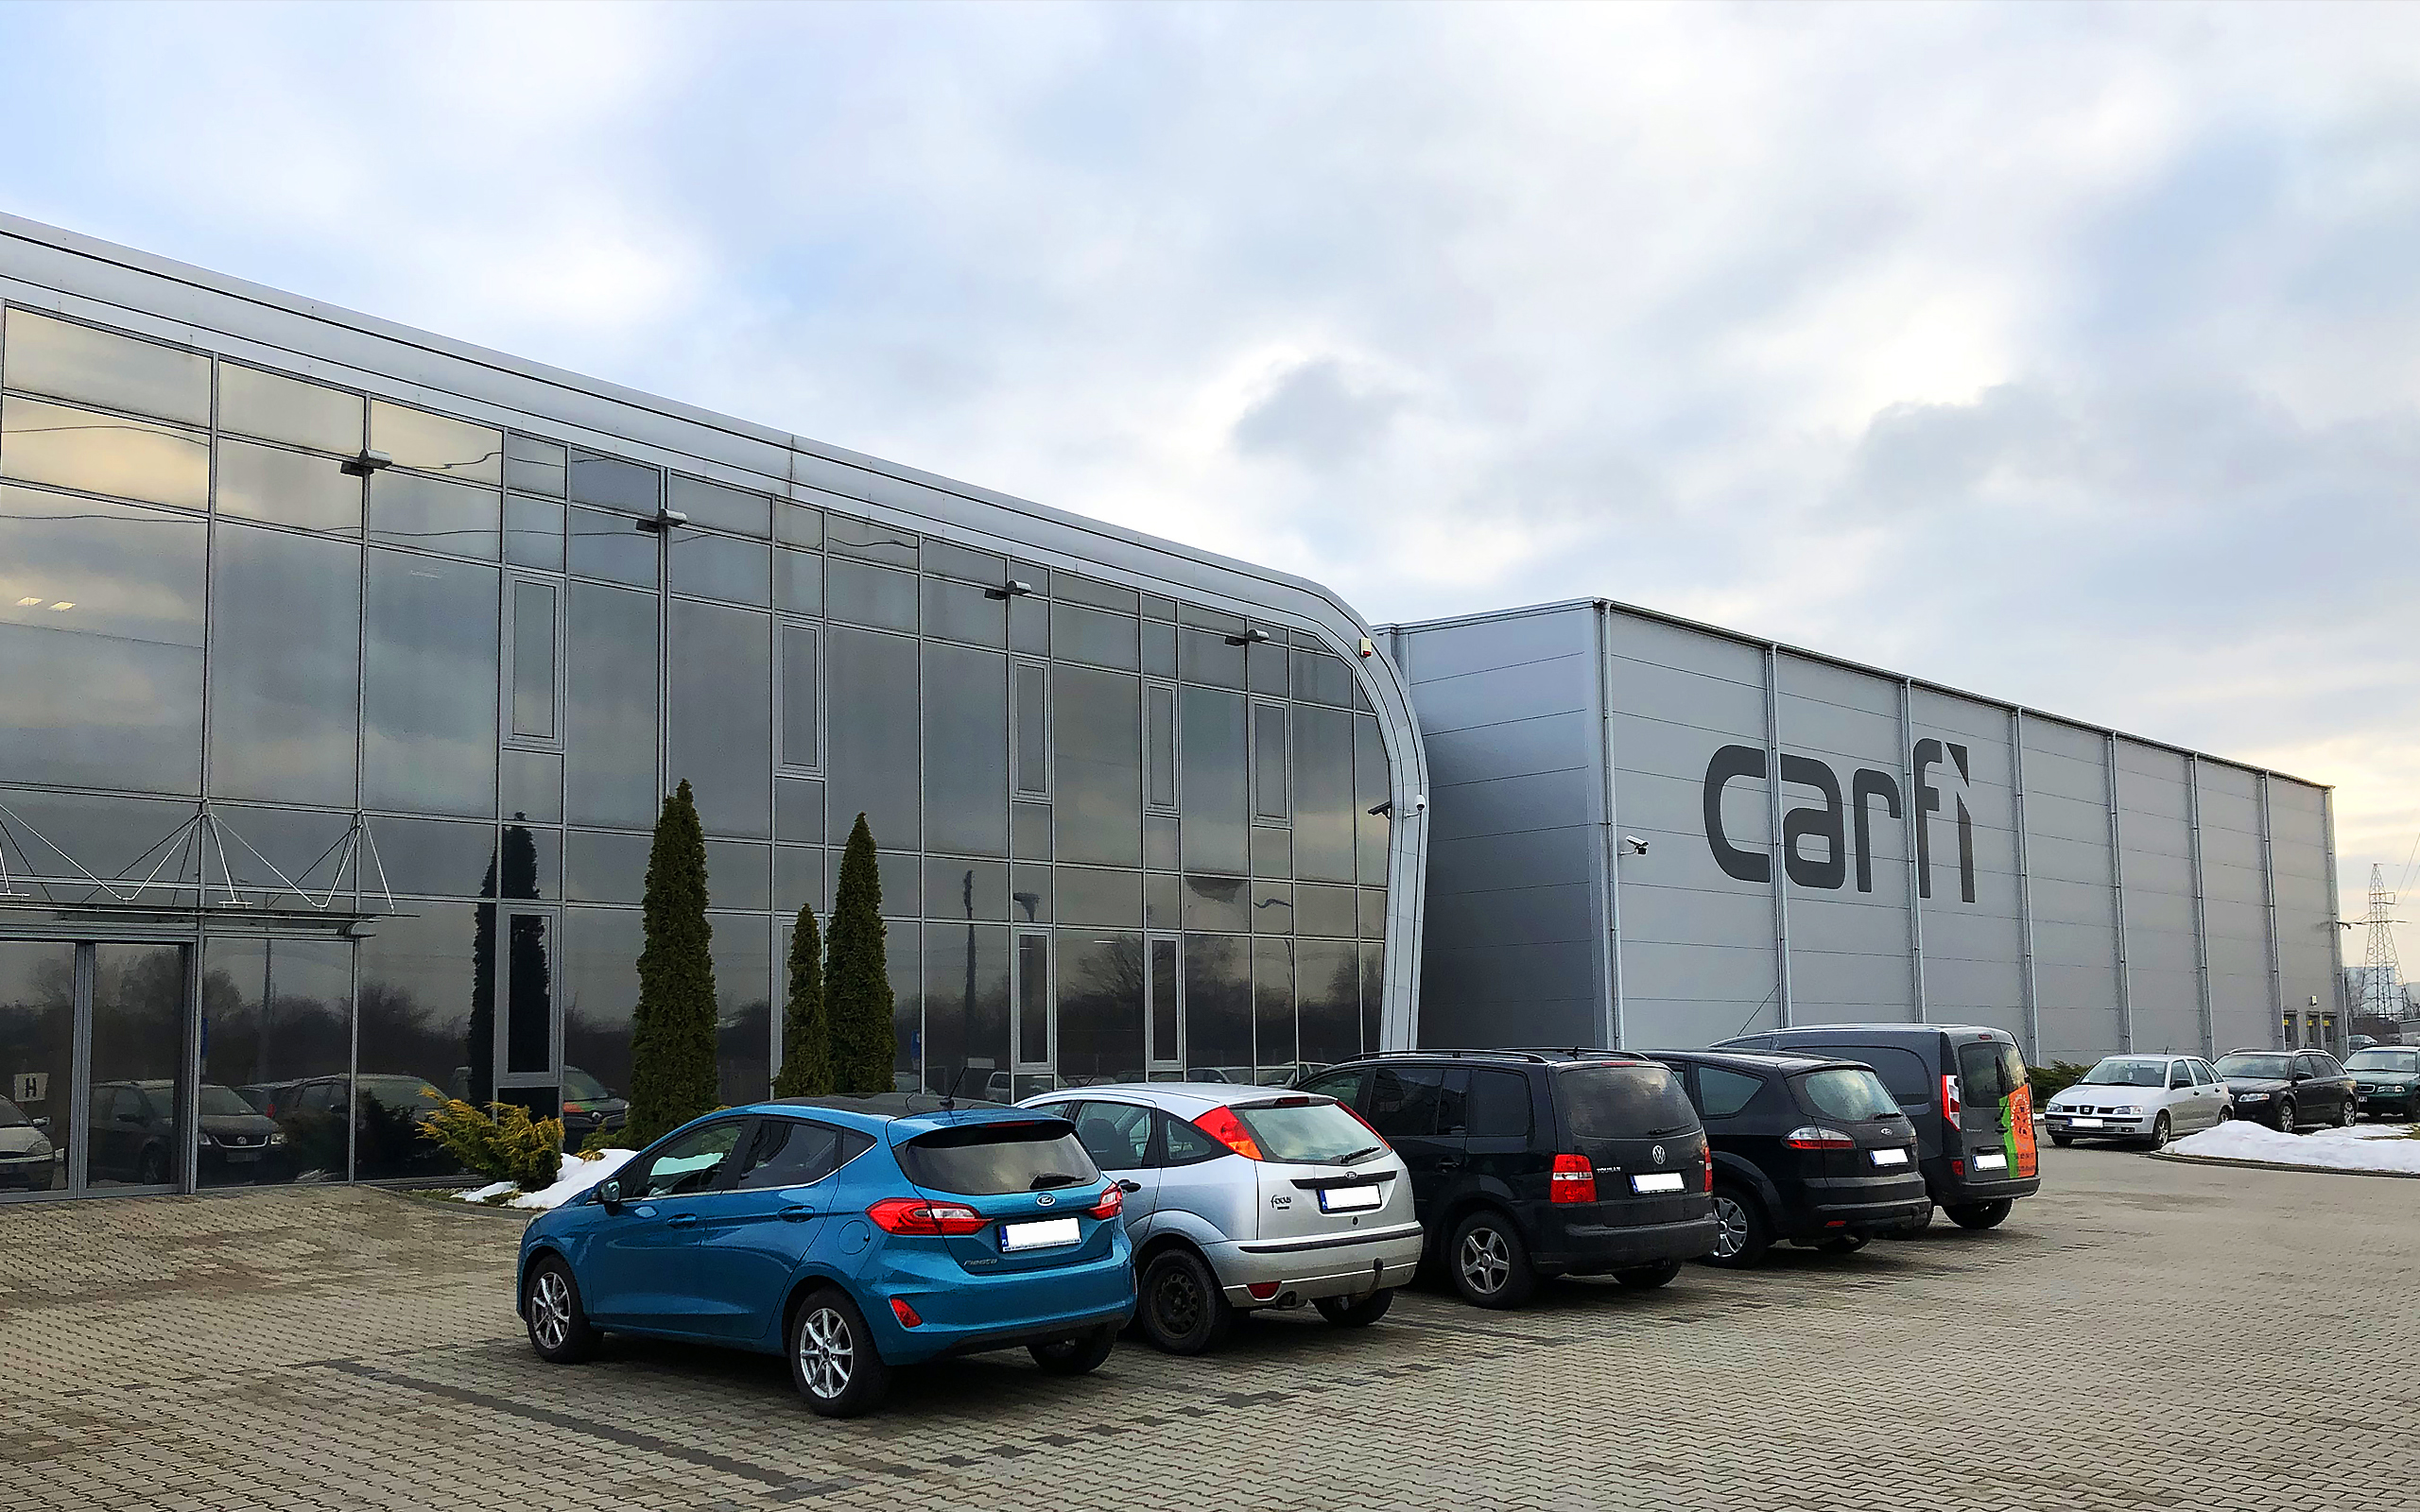 Welcome to Carfi Group